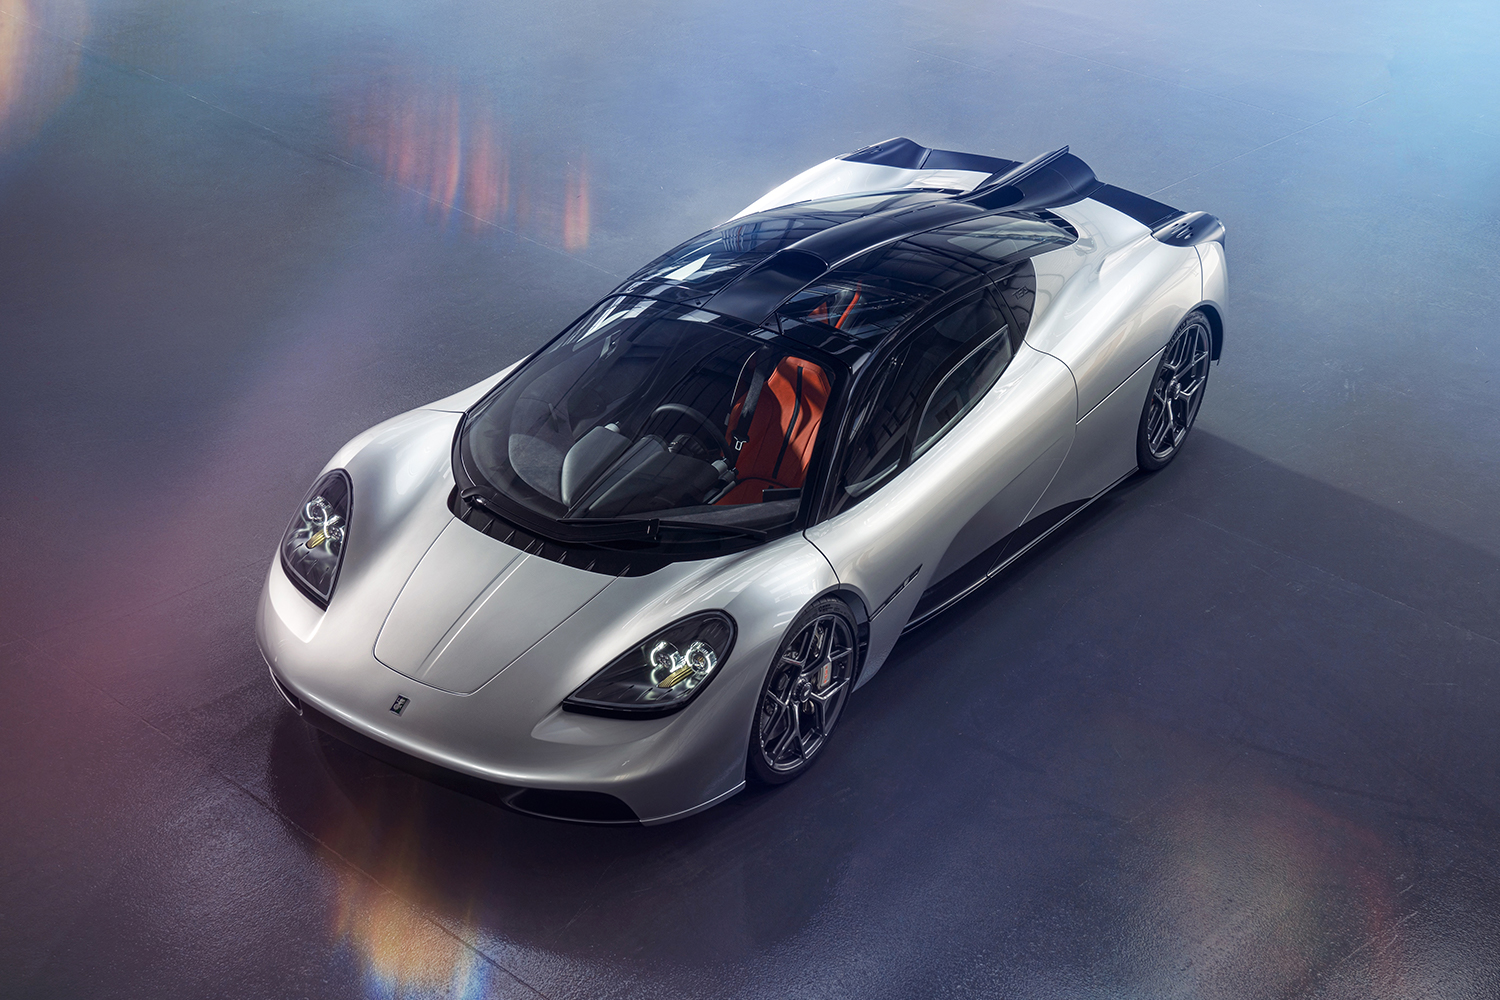 Gordon Murray Automotive T.50 Supercar Exterior